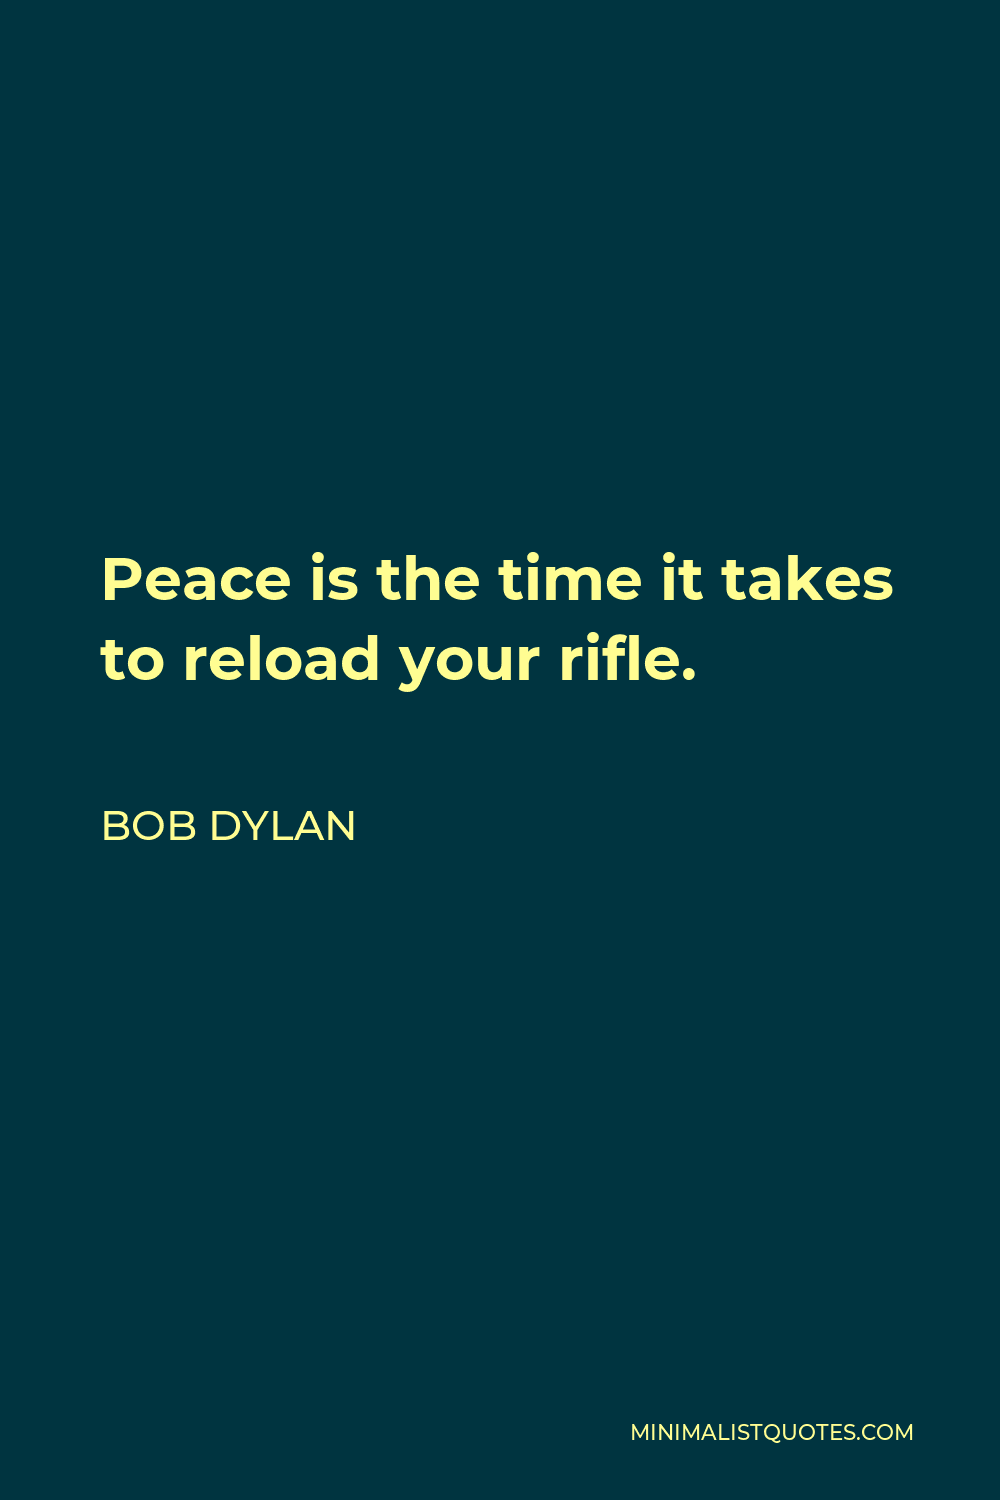 Bob Dylan Quote - Peace is the time it takes to reload your rifle.